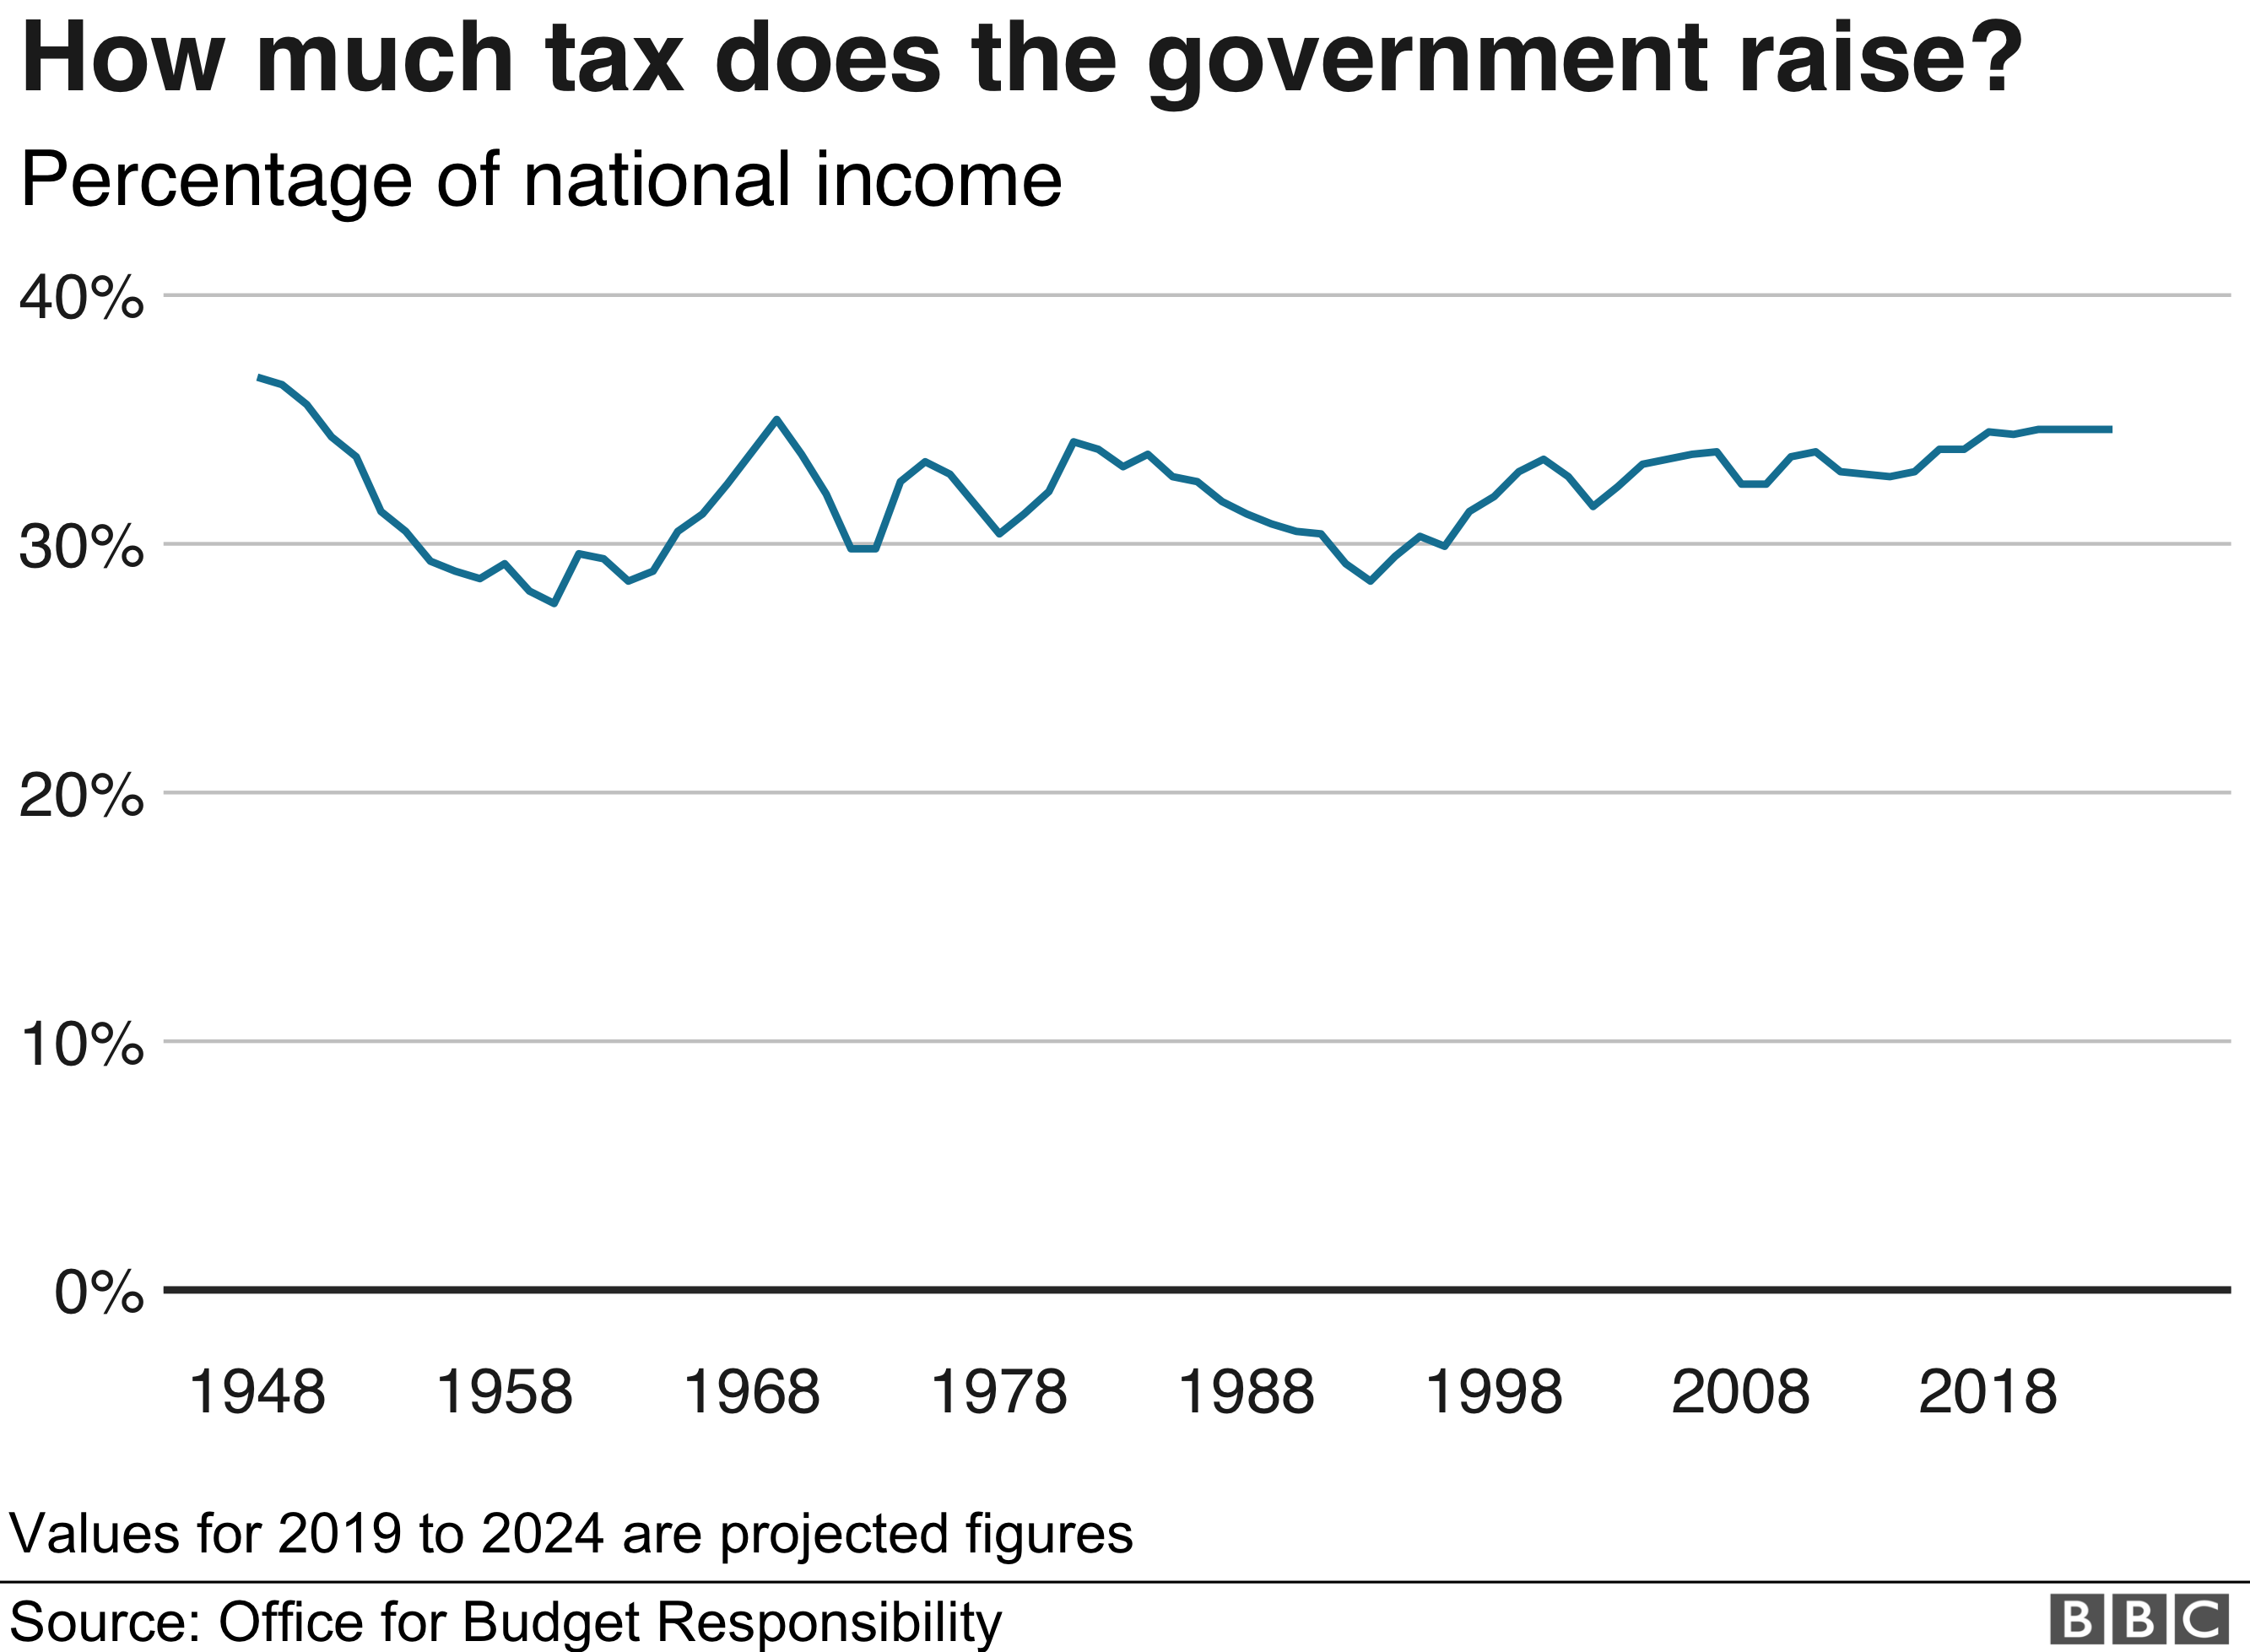 Chart showing taxes as a % of national income from 1948 to 2019